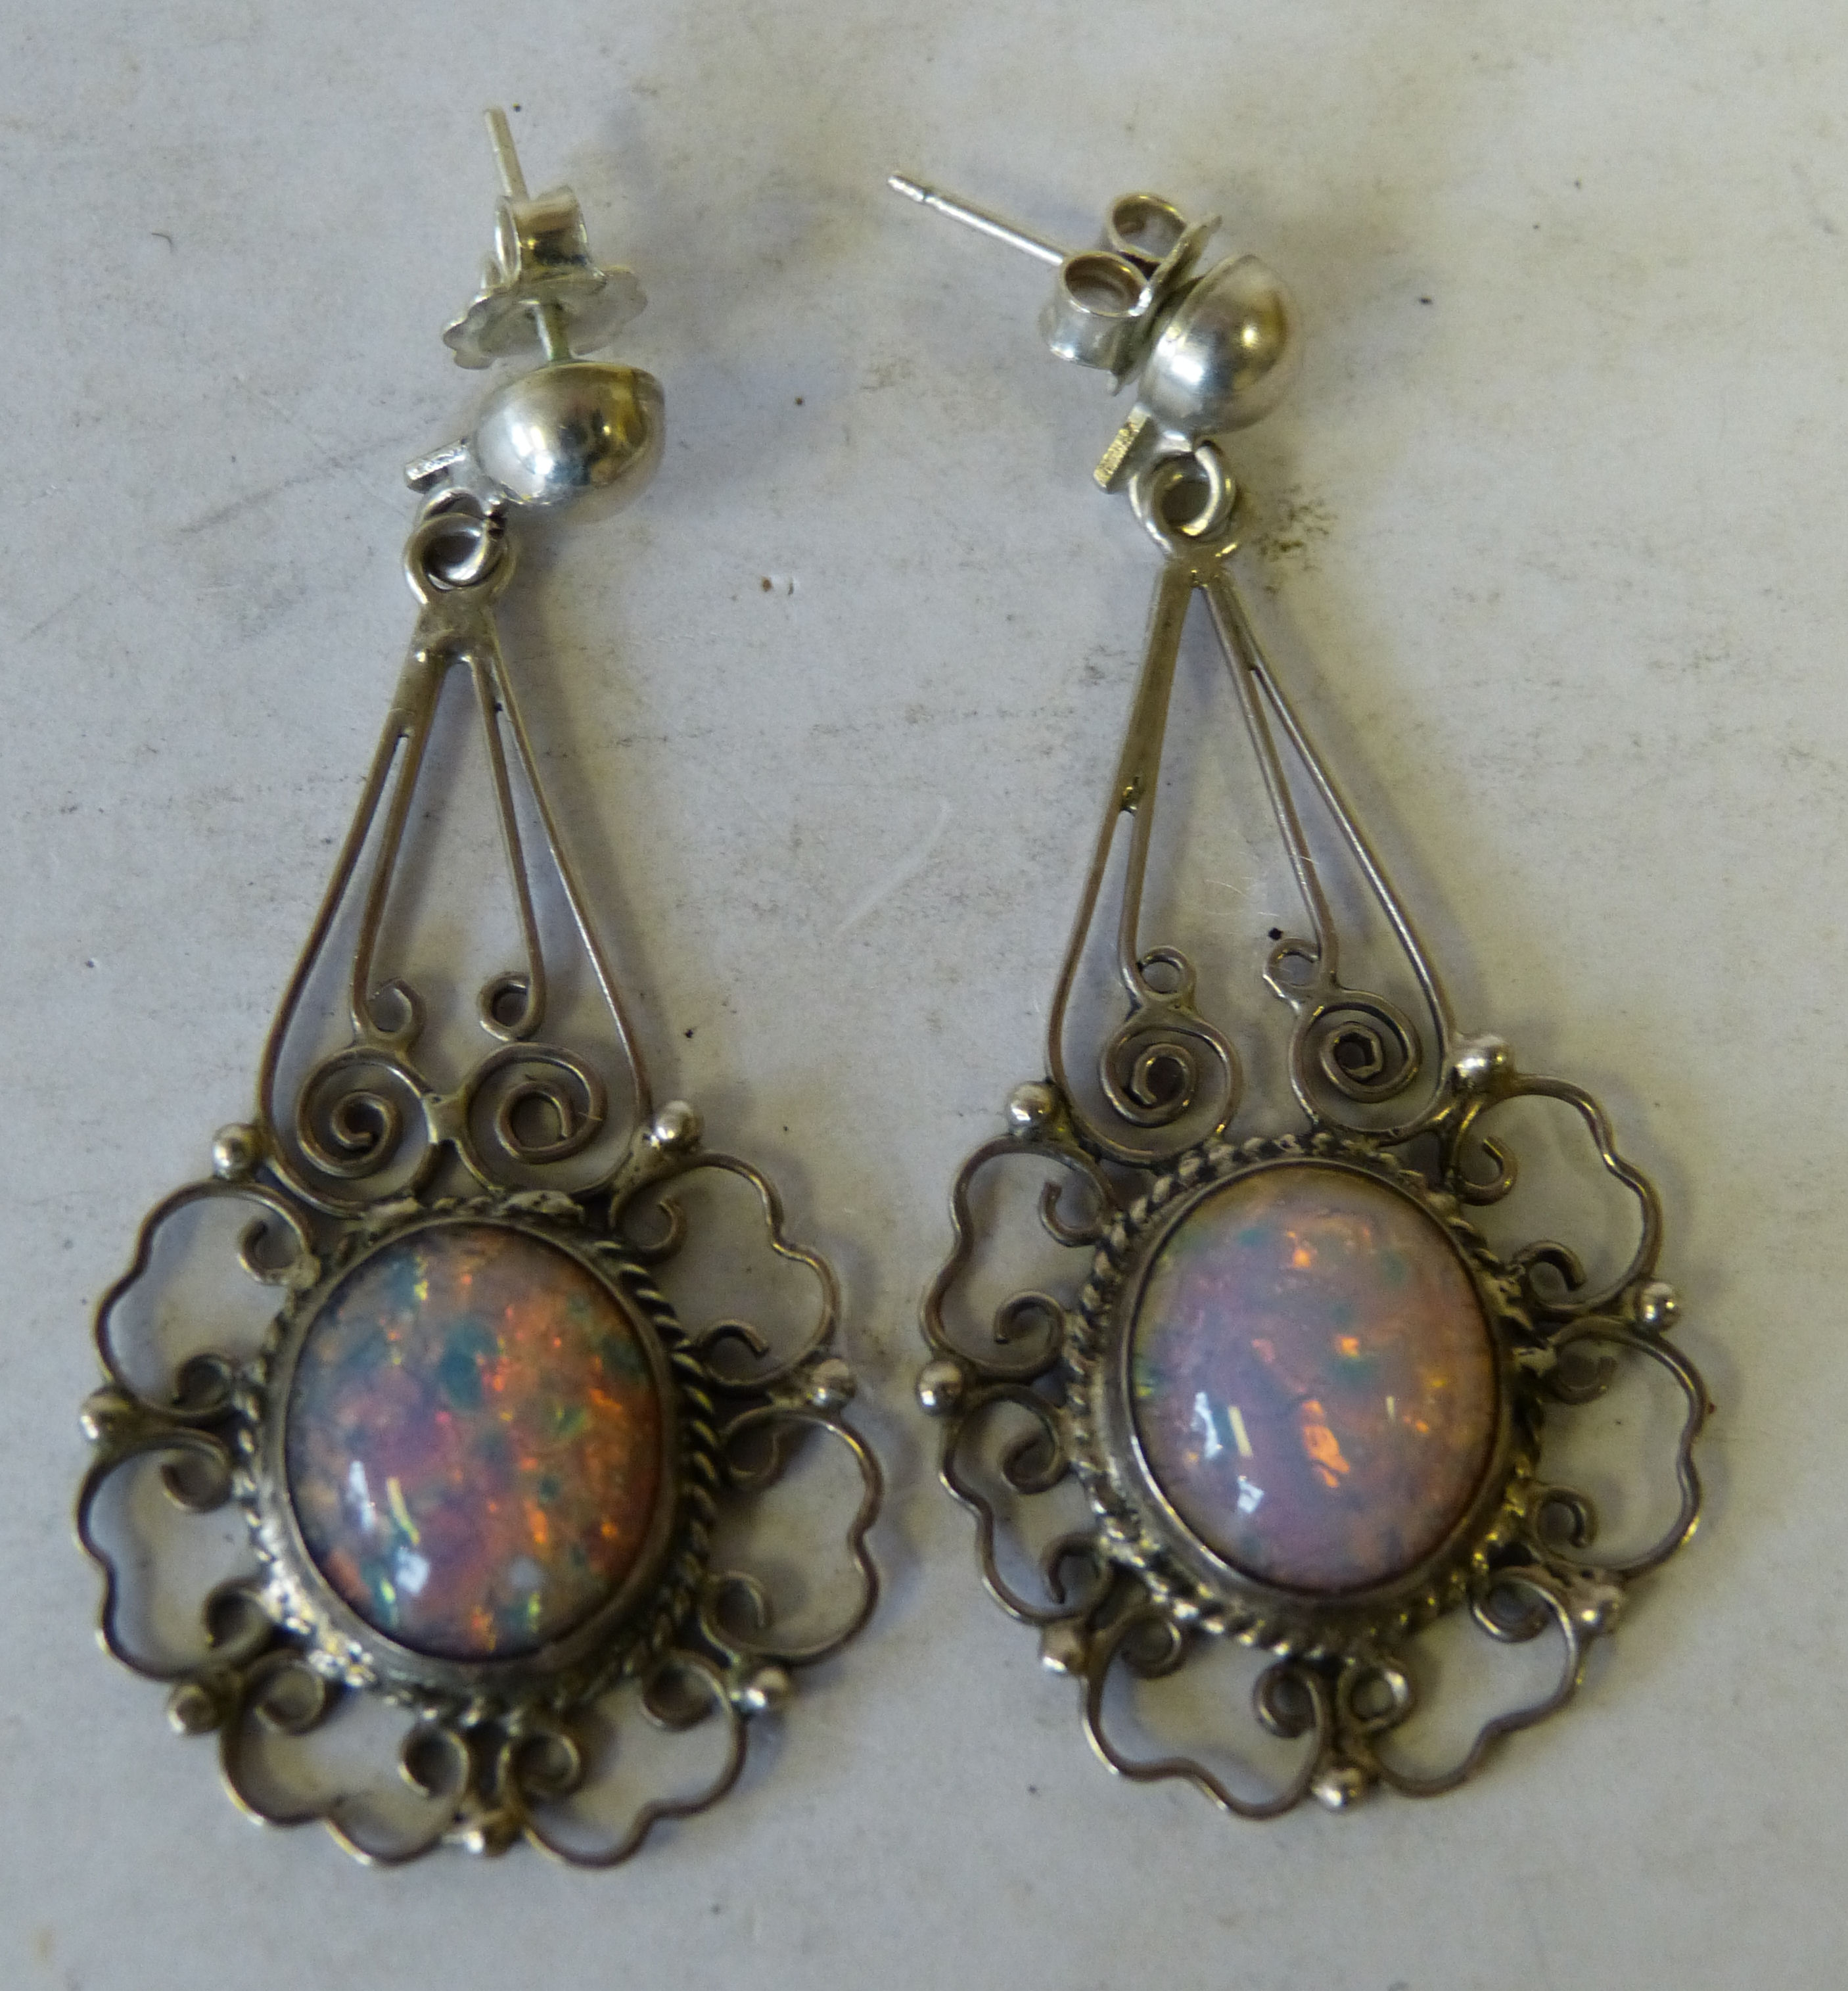 A Pair of Sterling Silver Drop Earrings mounted with opals